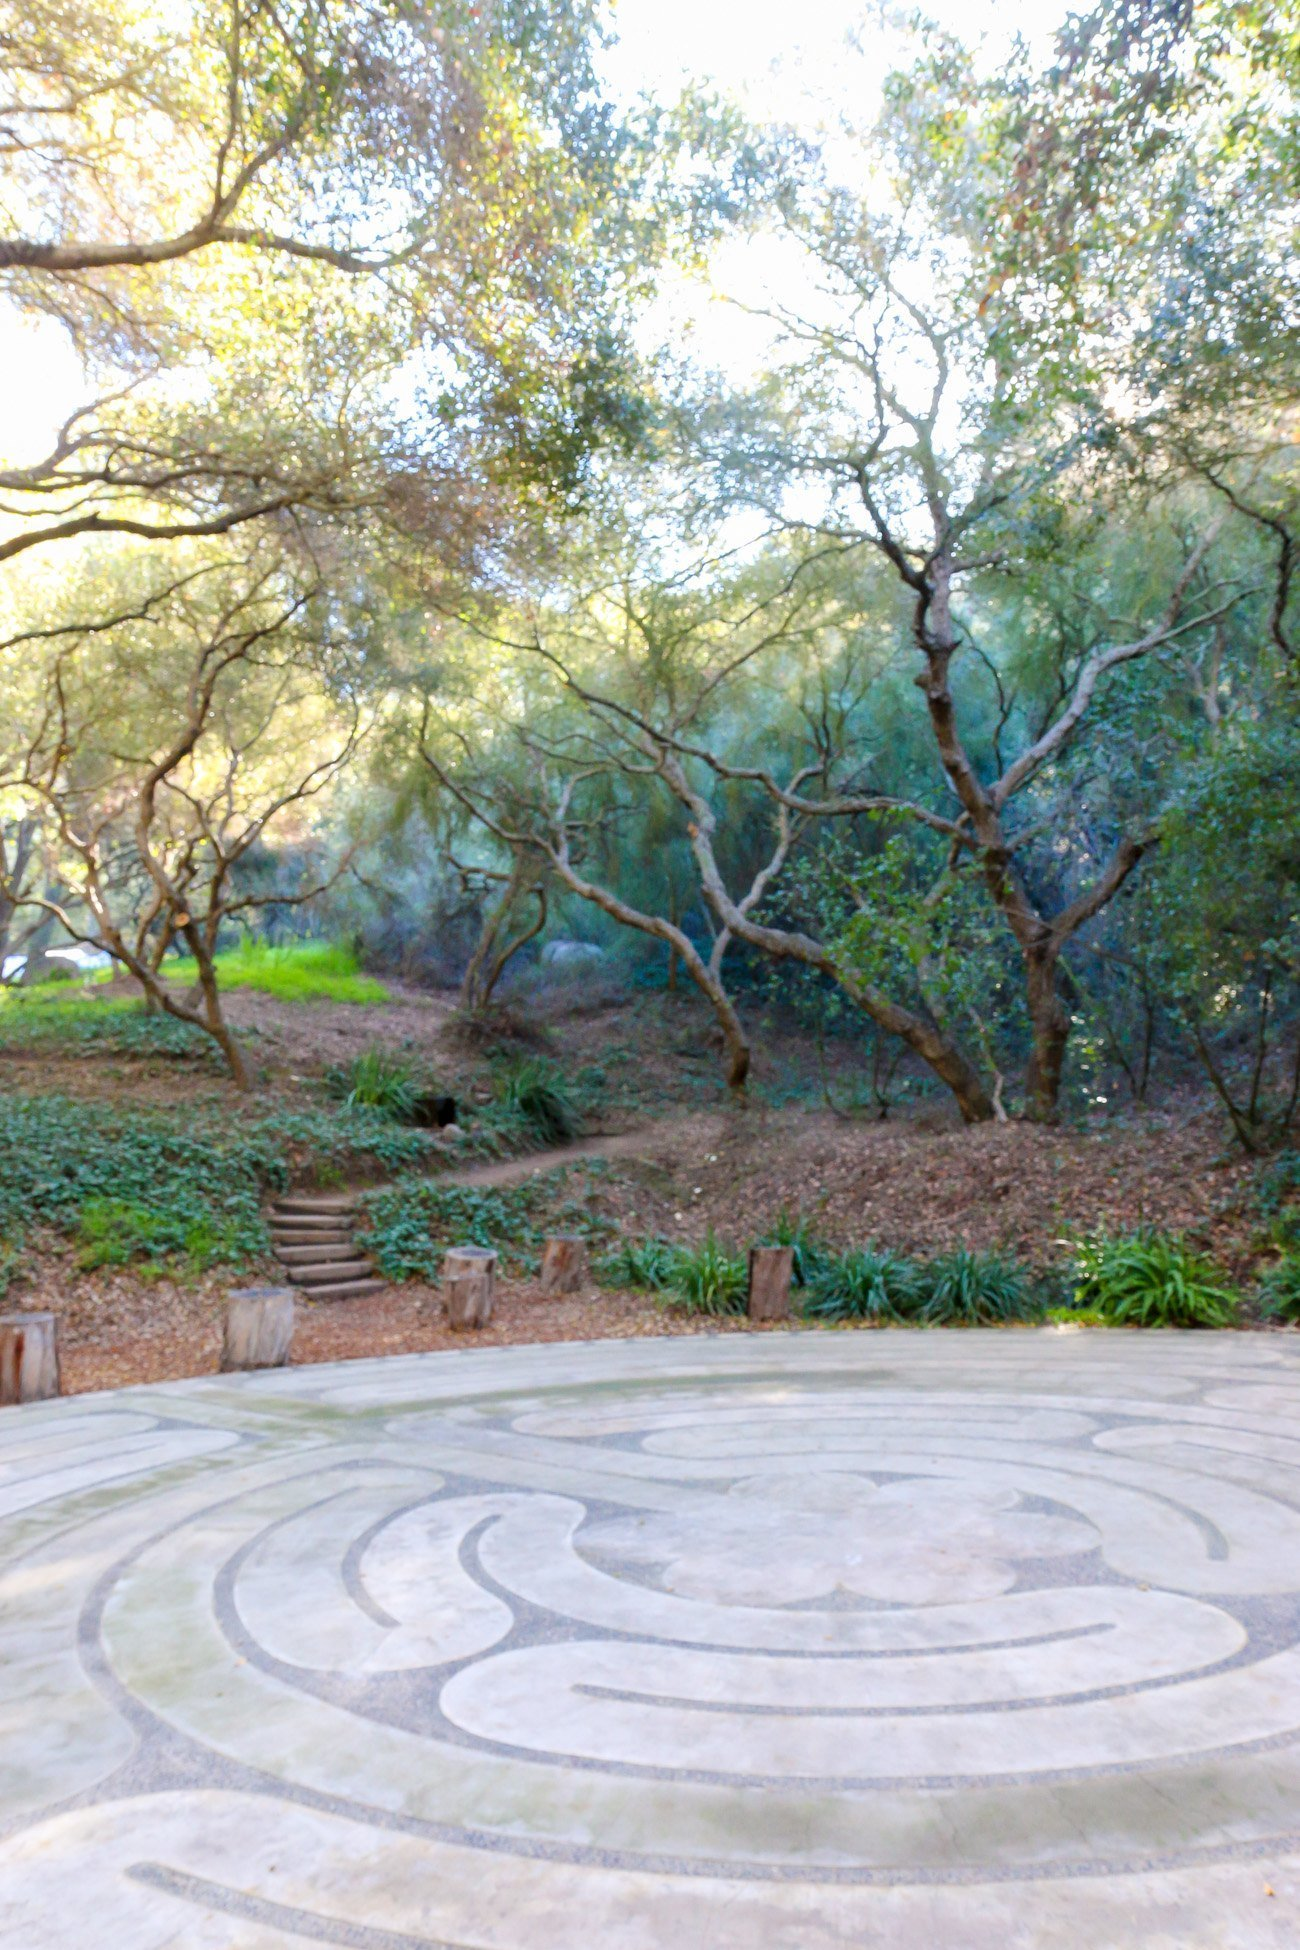 The labyrinth at Golden Door plays a big role in creating spiritual awareness for guests.